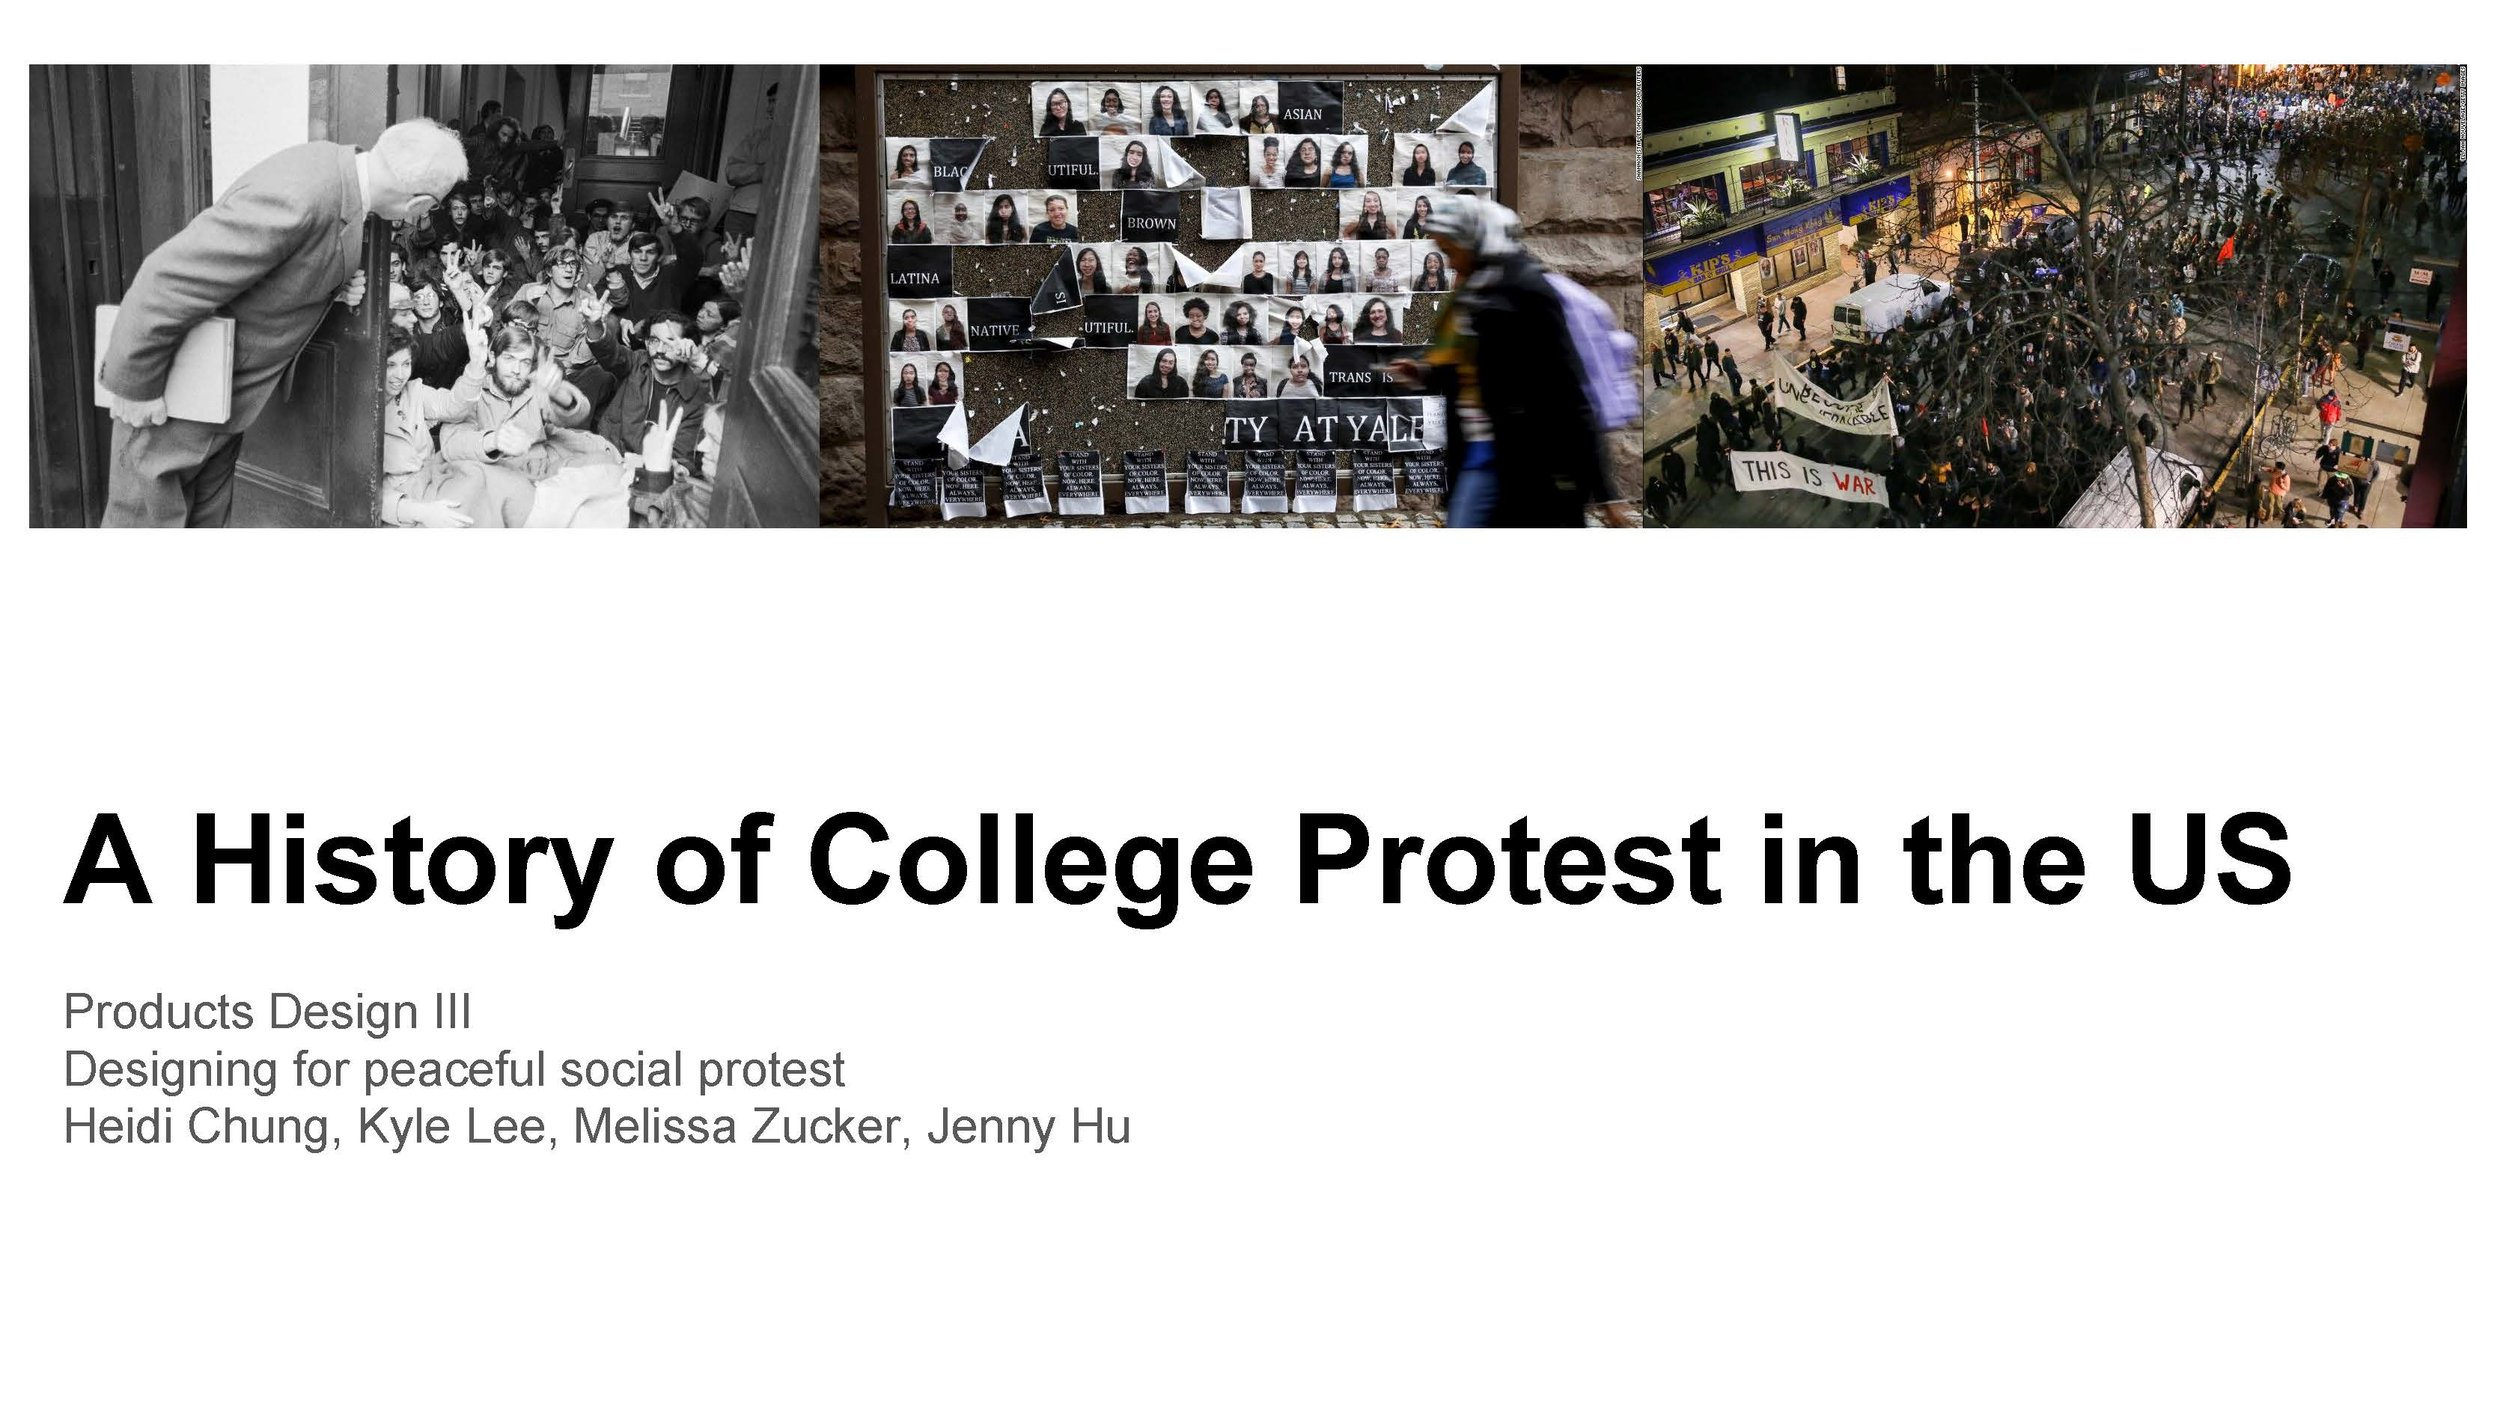 History of College Protest in the US_Page_01.jpg